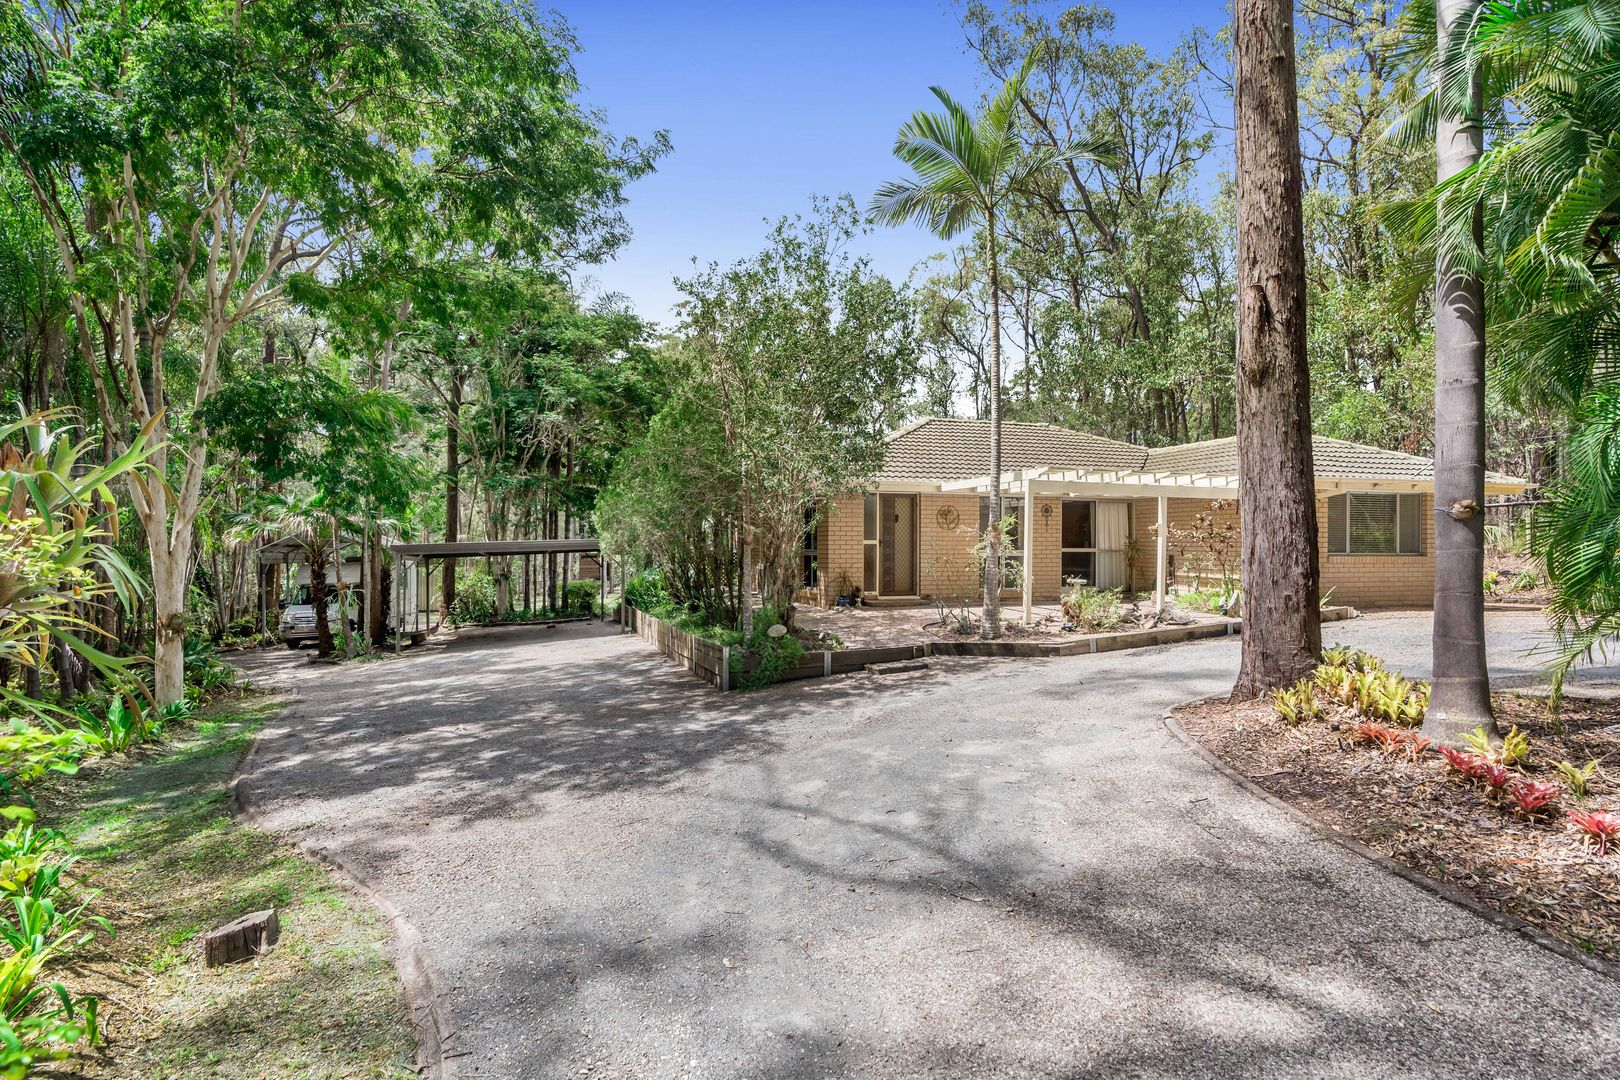 57-59 Campbell Road, Sheldon QLD 4157, Image 0